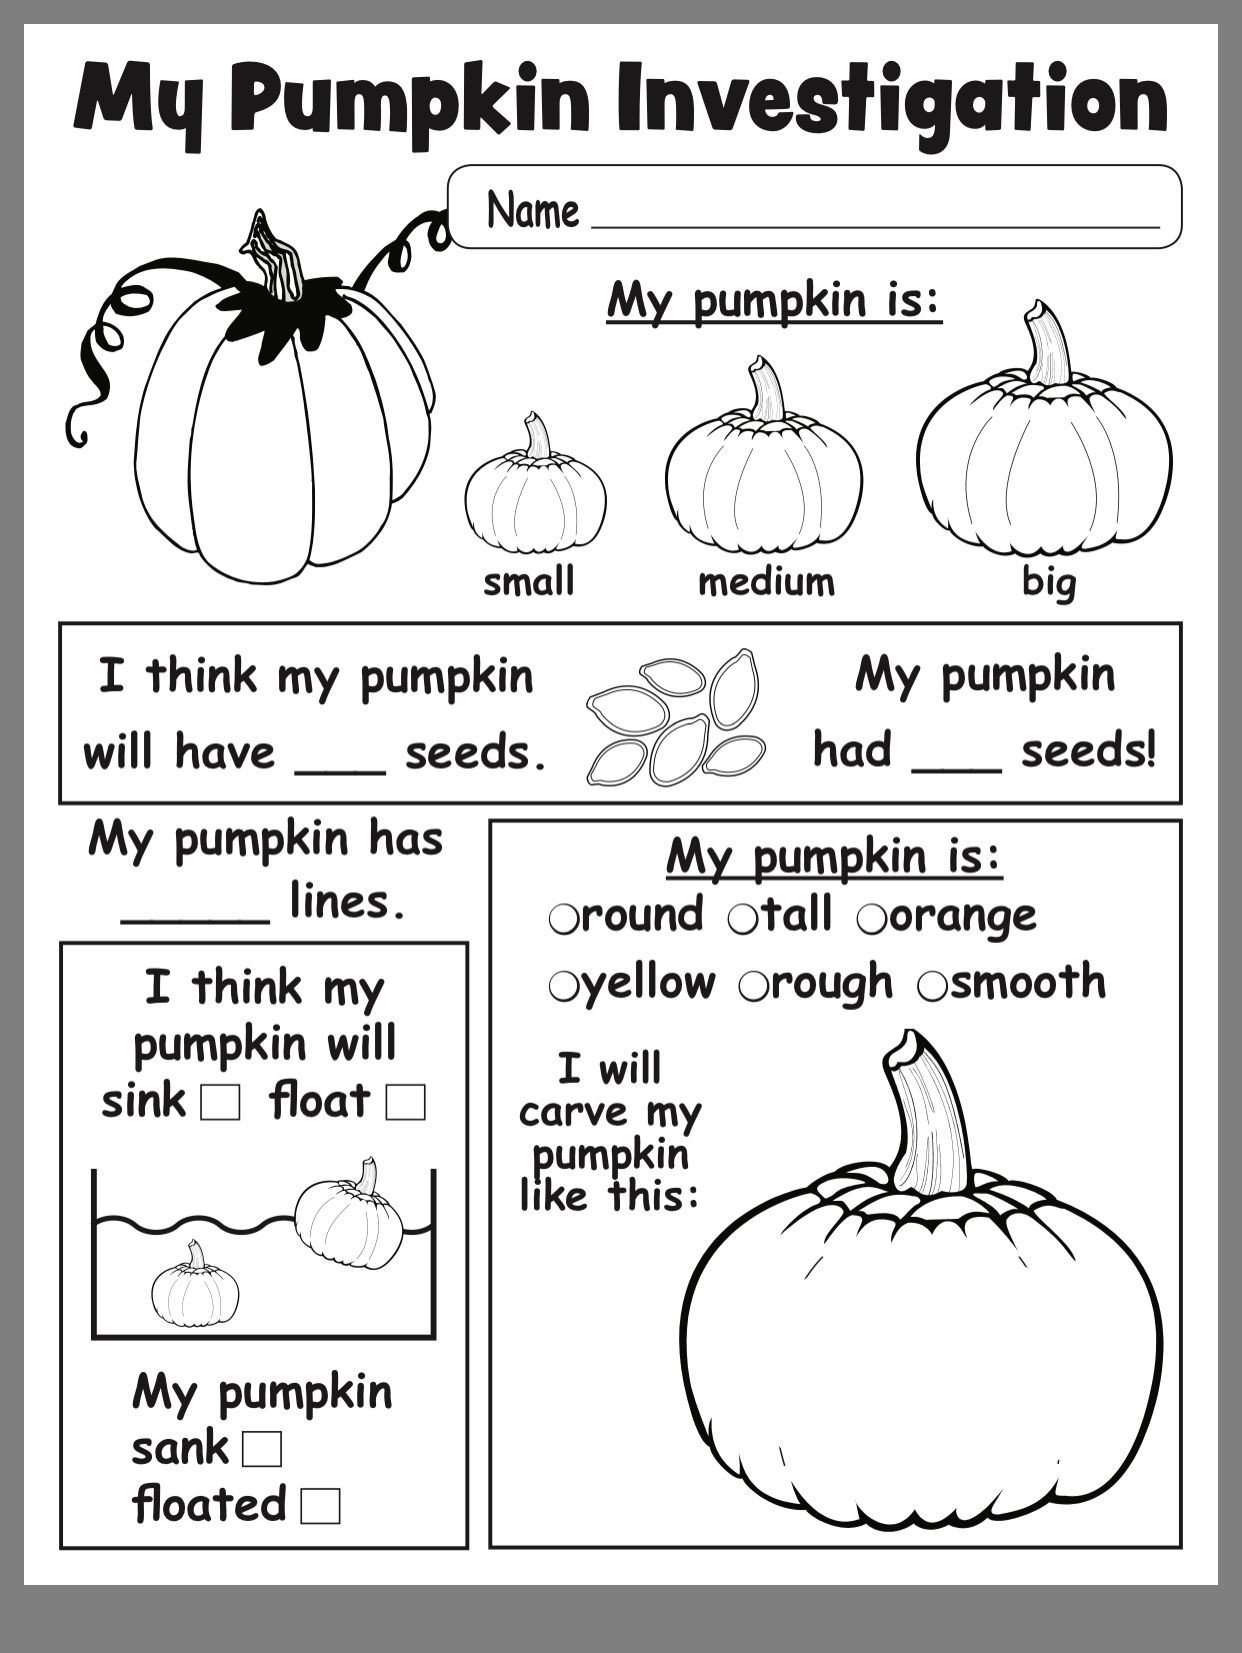 Pumpkin Worksheets for Kindergarten Pumpkin Investigation